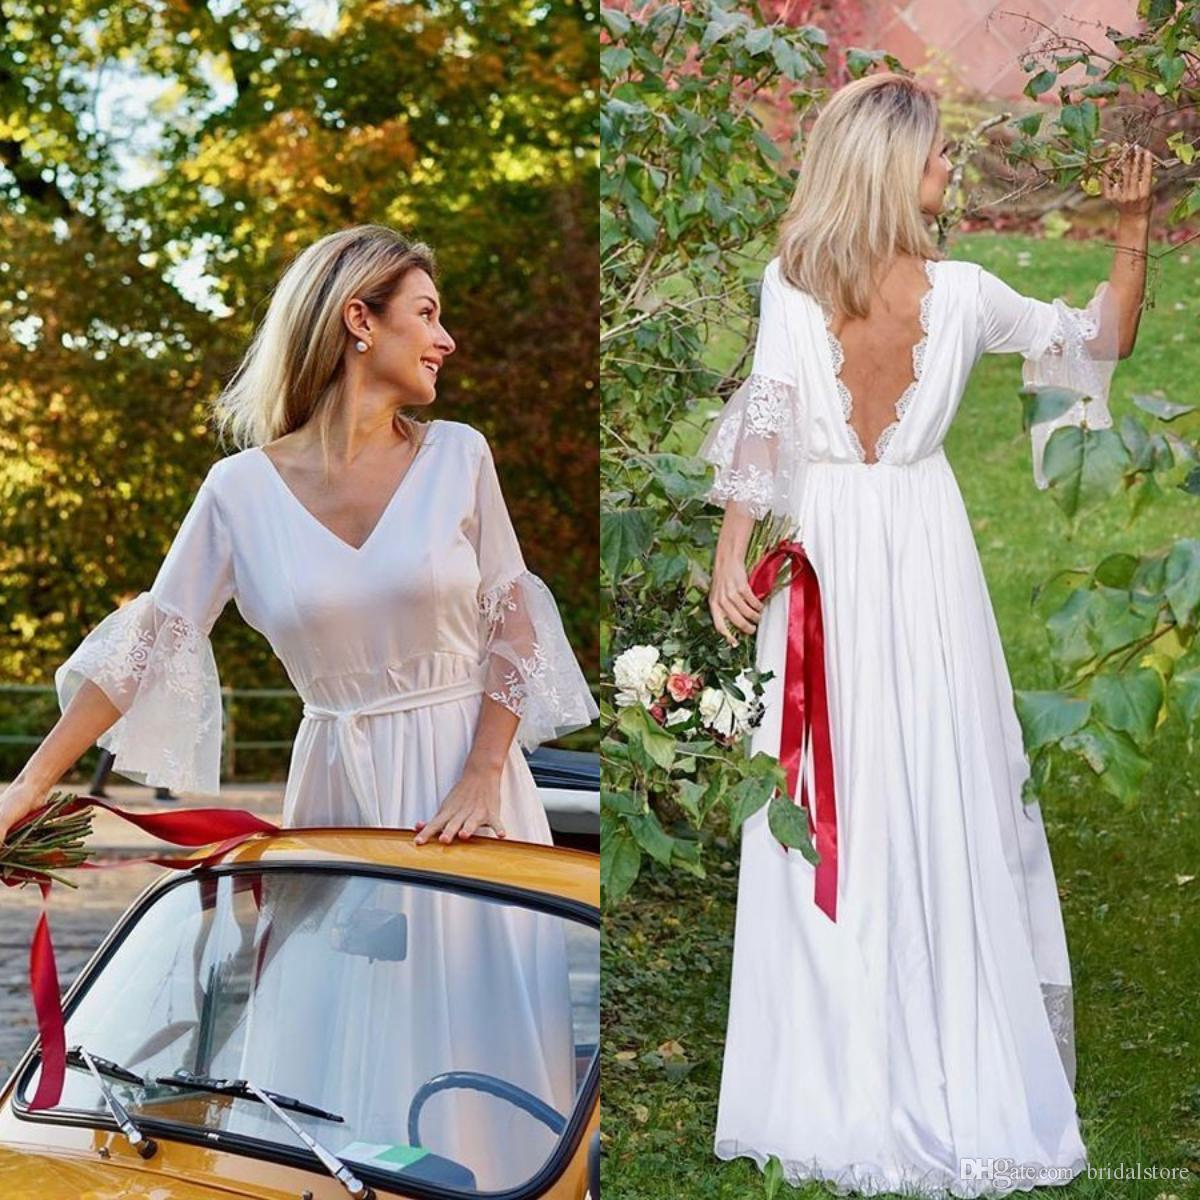 West Vintage Boho Country Wedding Dresses With Sleeve V Neck Floor Length Chiffon Cheap Bohemian Bridal Gowns 2018 Low Back Garden Summer